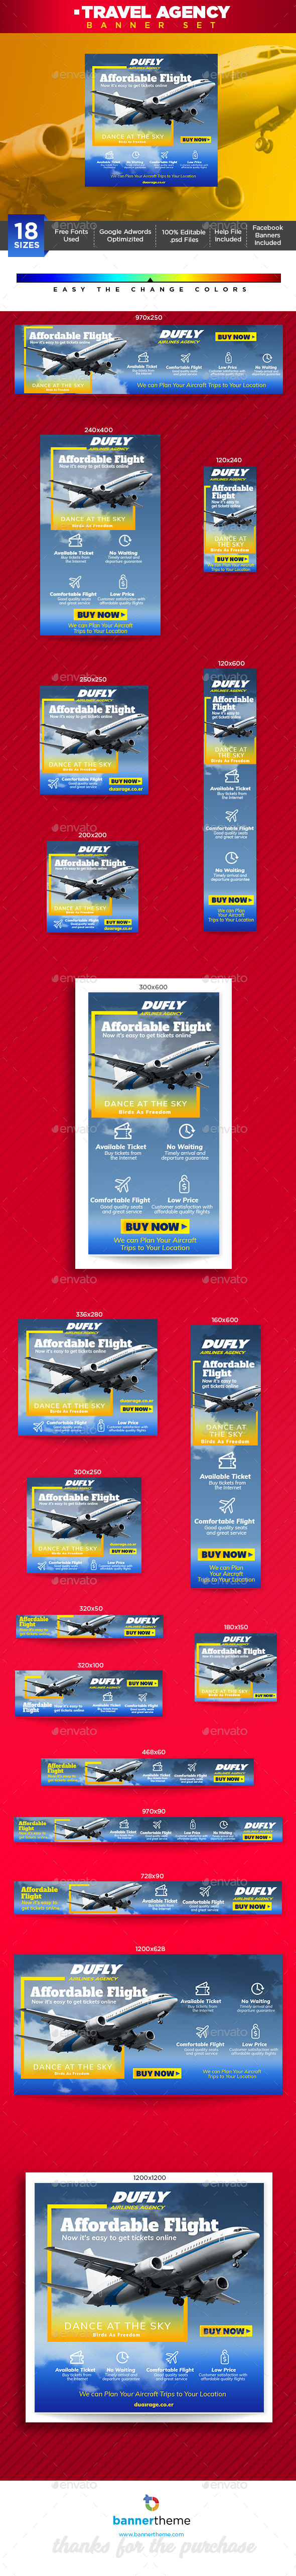 Travel Agency Banner - Banners & Ads Web Elements